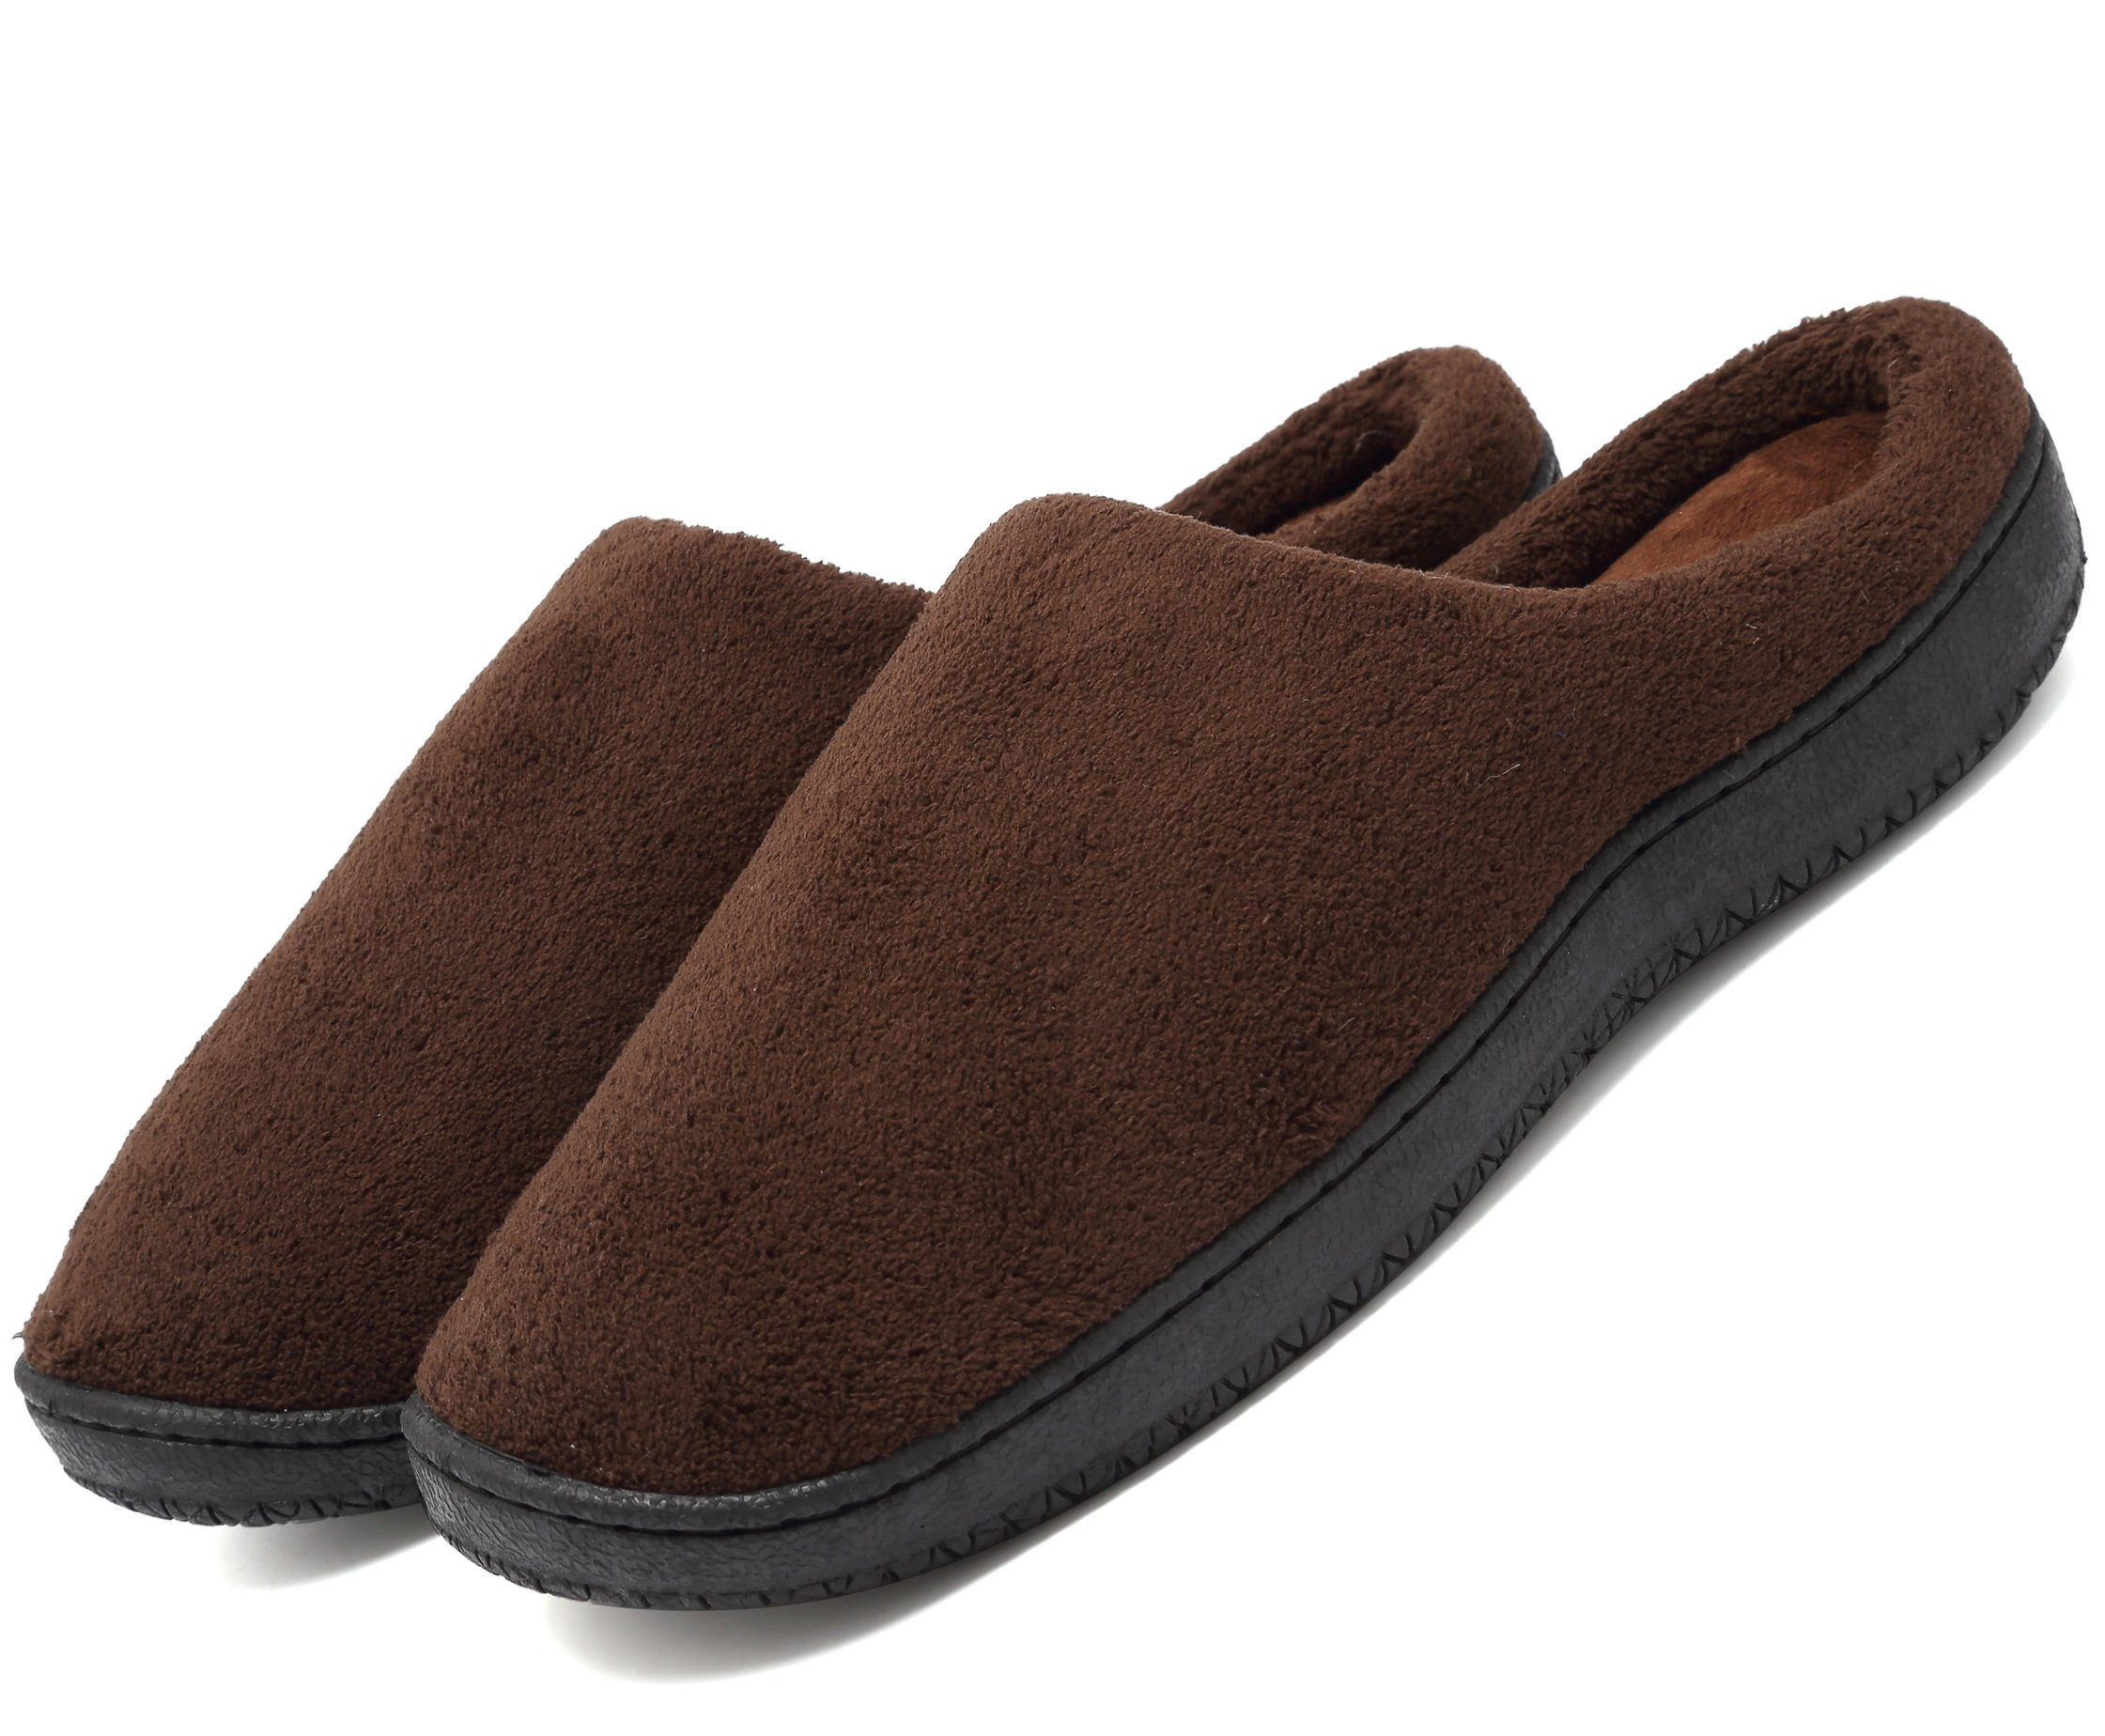 welltree Unisex Soft Coral Plush Memory Foam Comfort House Clog Indoor Slippers 4/10.5-11.5 B(M) Women/8.5-9.5 D(M) Men Brown 42.43